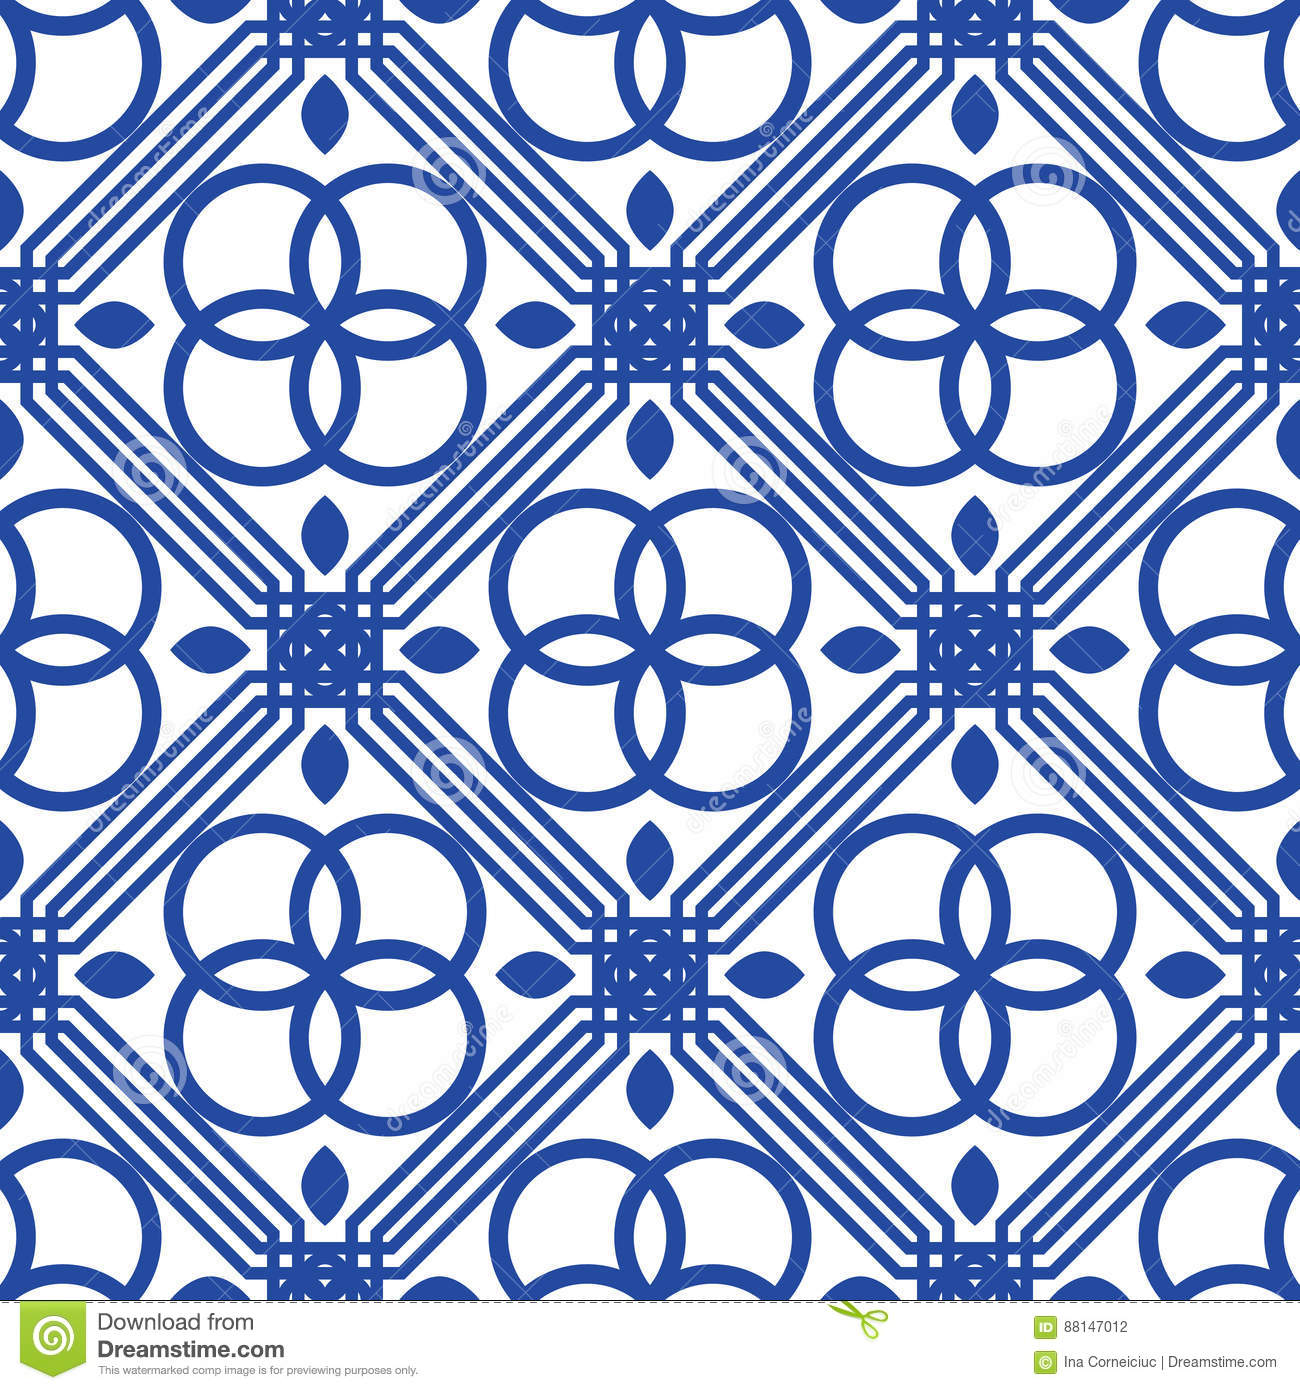 Blue And White Mediterranean Seamless Tile Pattern. Stock Vector ...